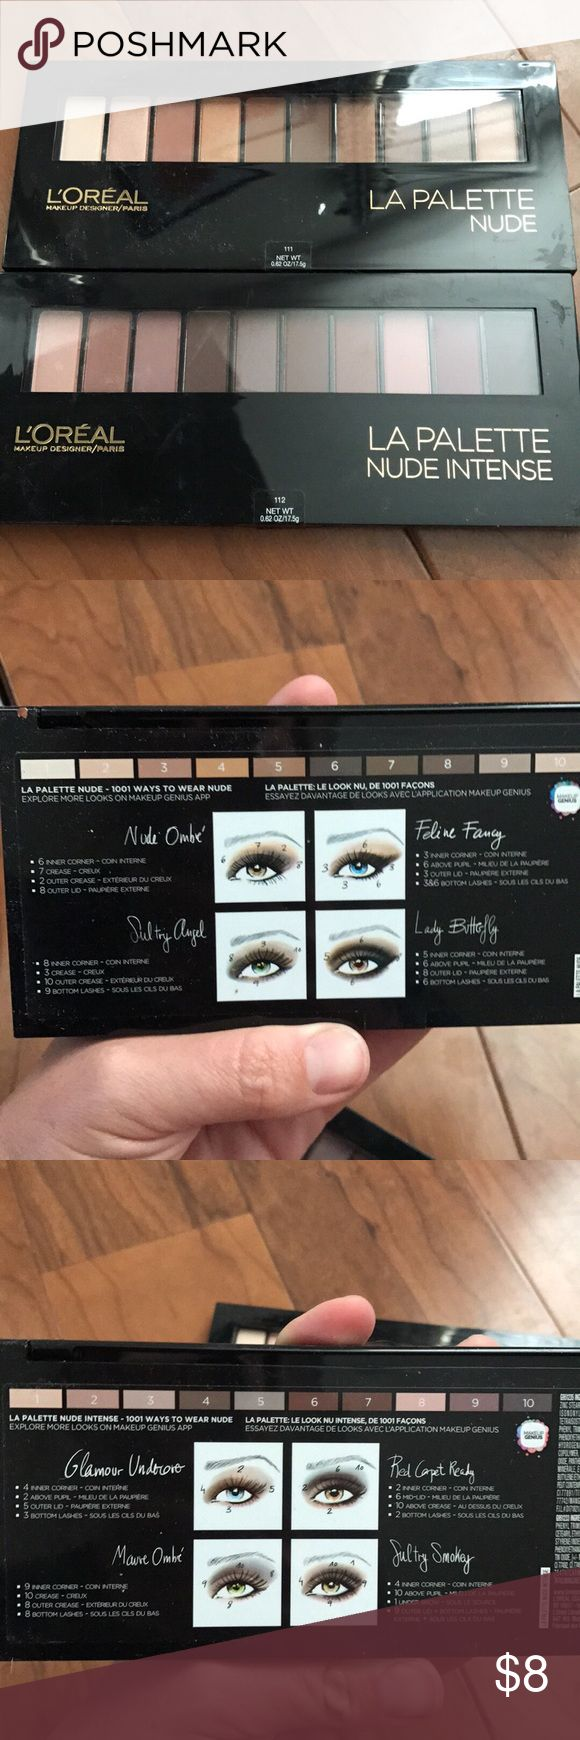 La palette nude and nude intense eye shadows L'Oréal eye shadow palettes . One nude and one nude intense. Brand new in package sealed never opened. Specify which color you prefer L'Oreal Makeup Eyeshadow